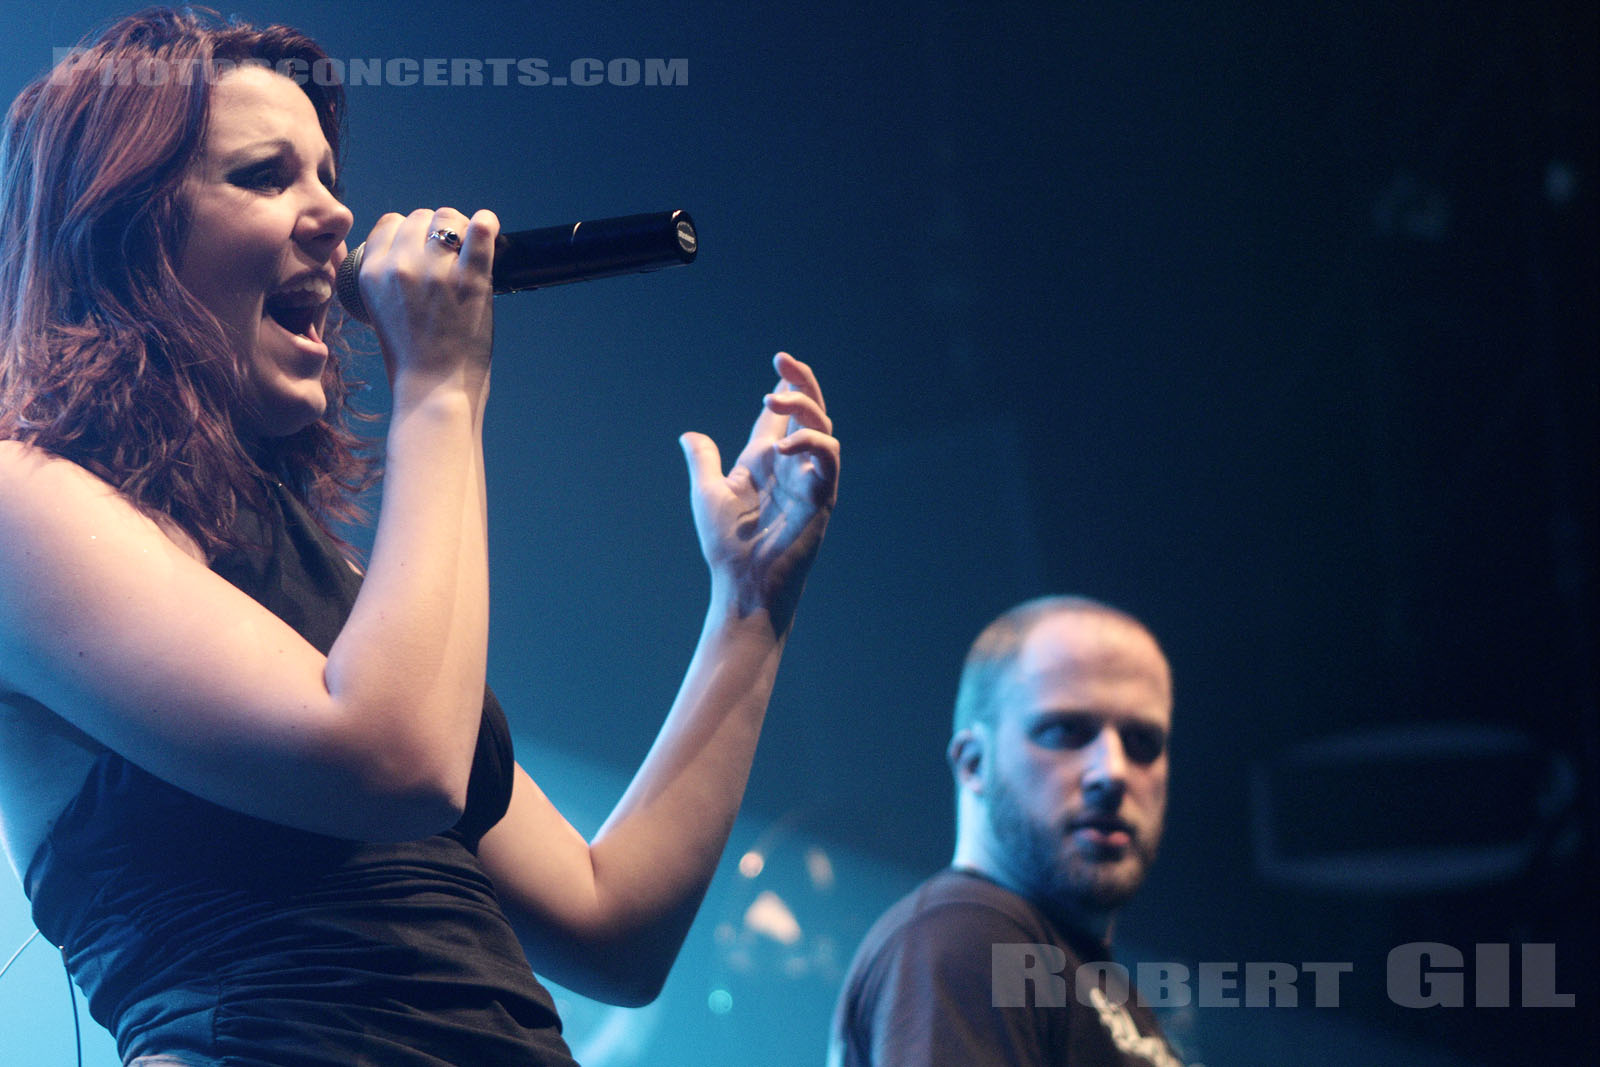 BENIGHTED SOUL - 2012-02-28 - PARIS - Le Bataclan